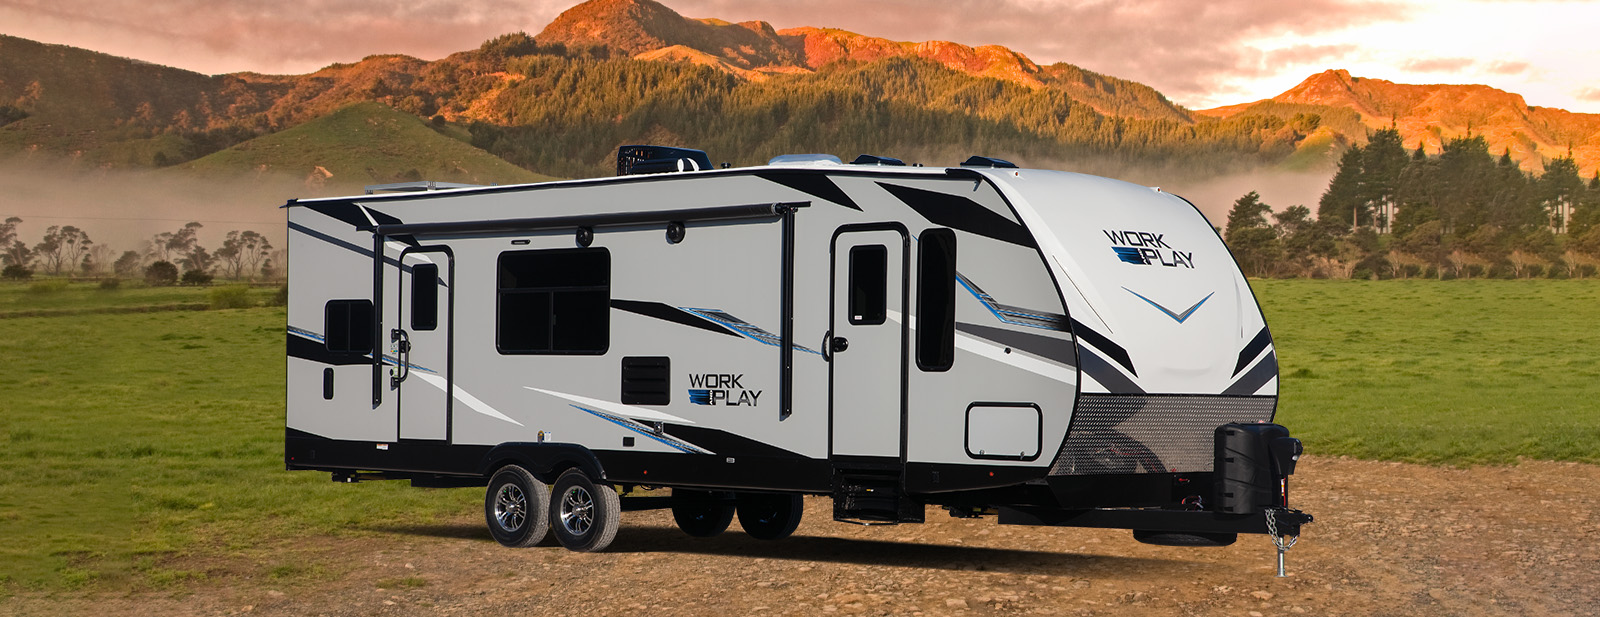 Work And Play Forest River Rv Manufacturer Of Travel